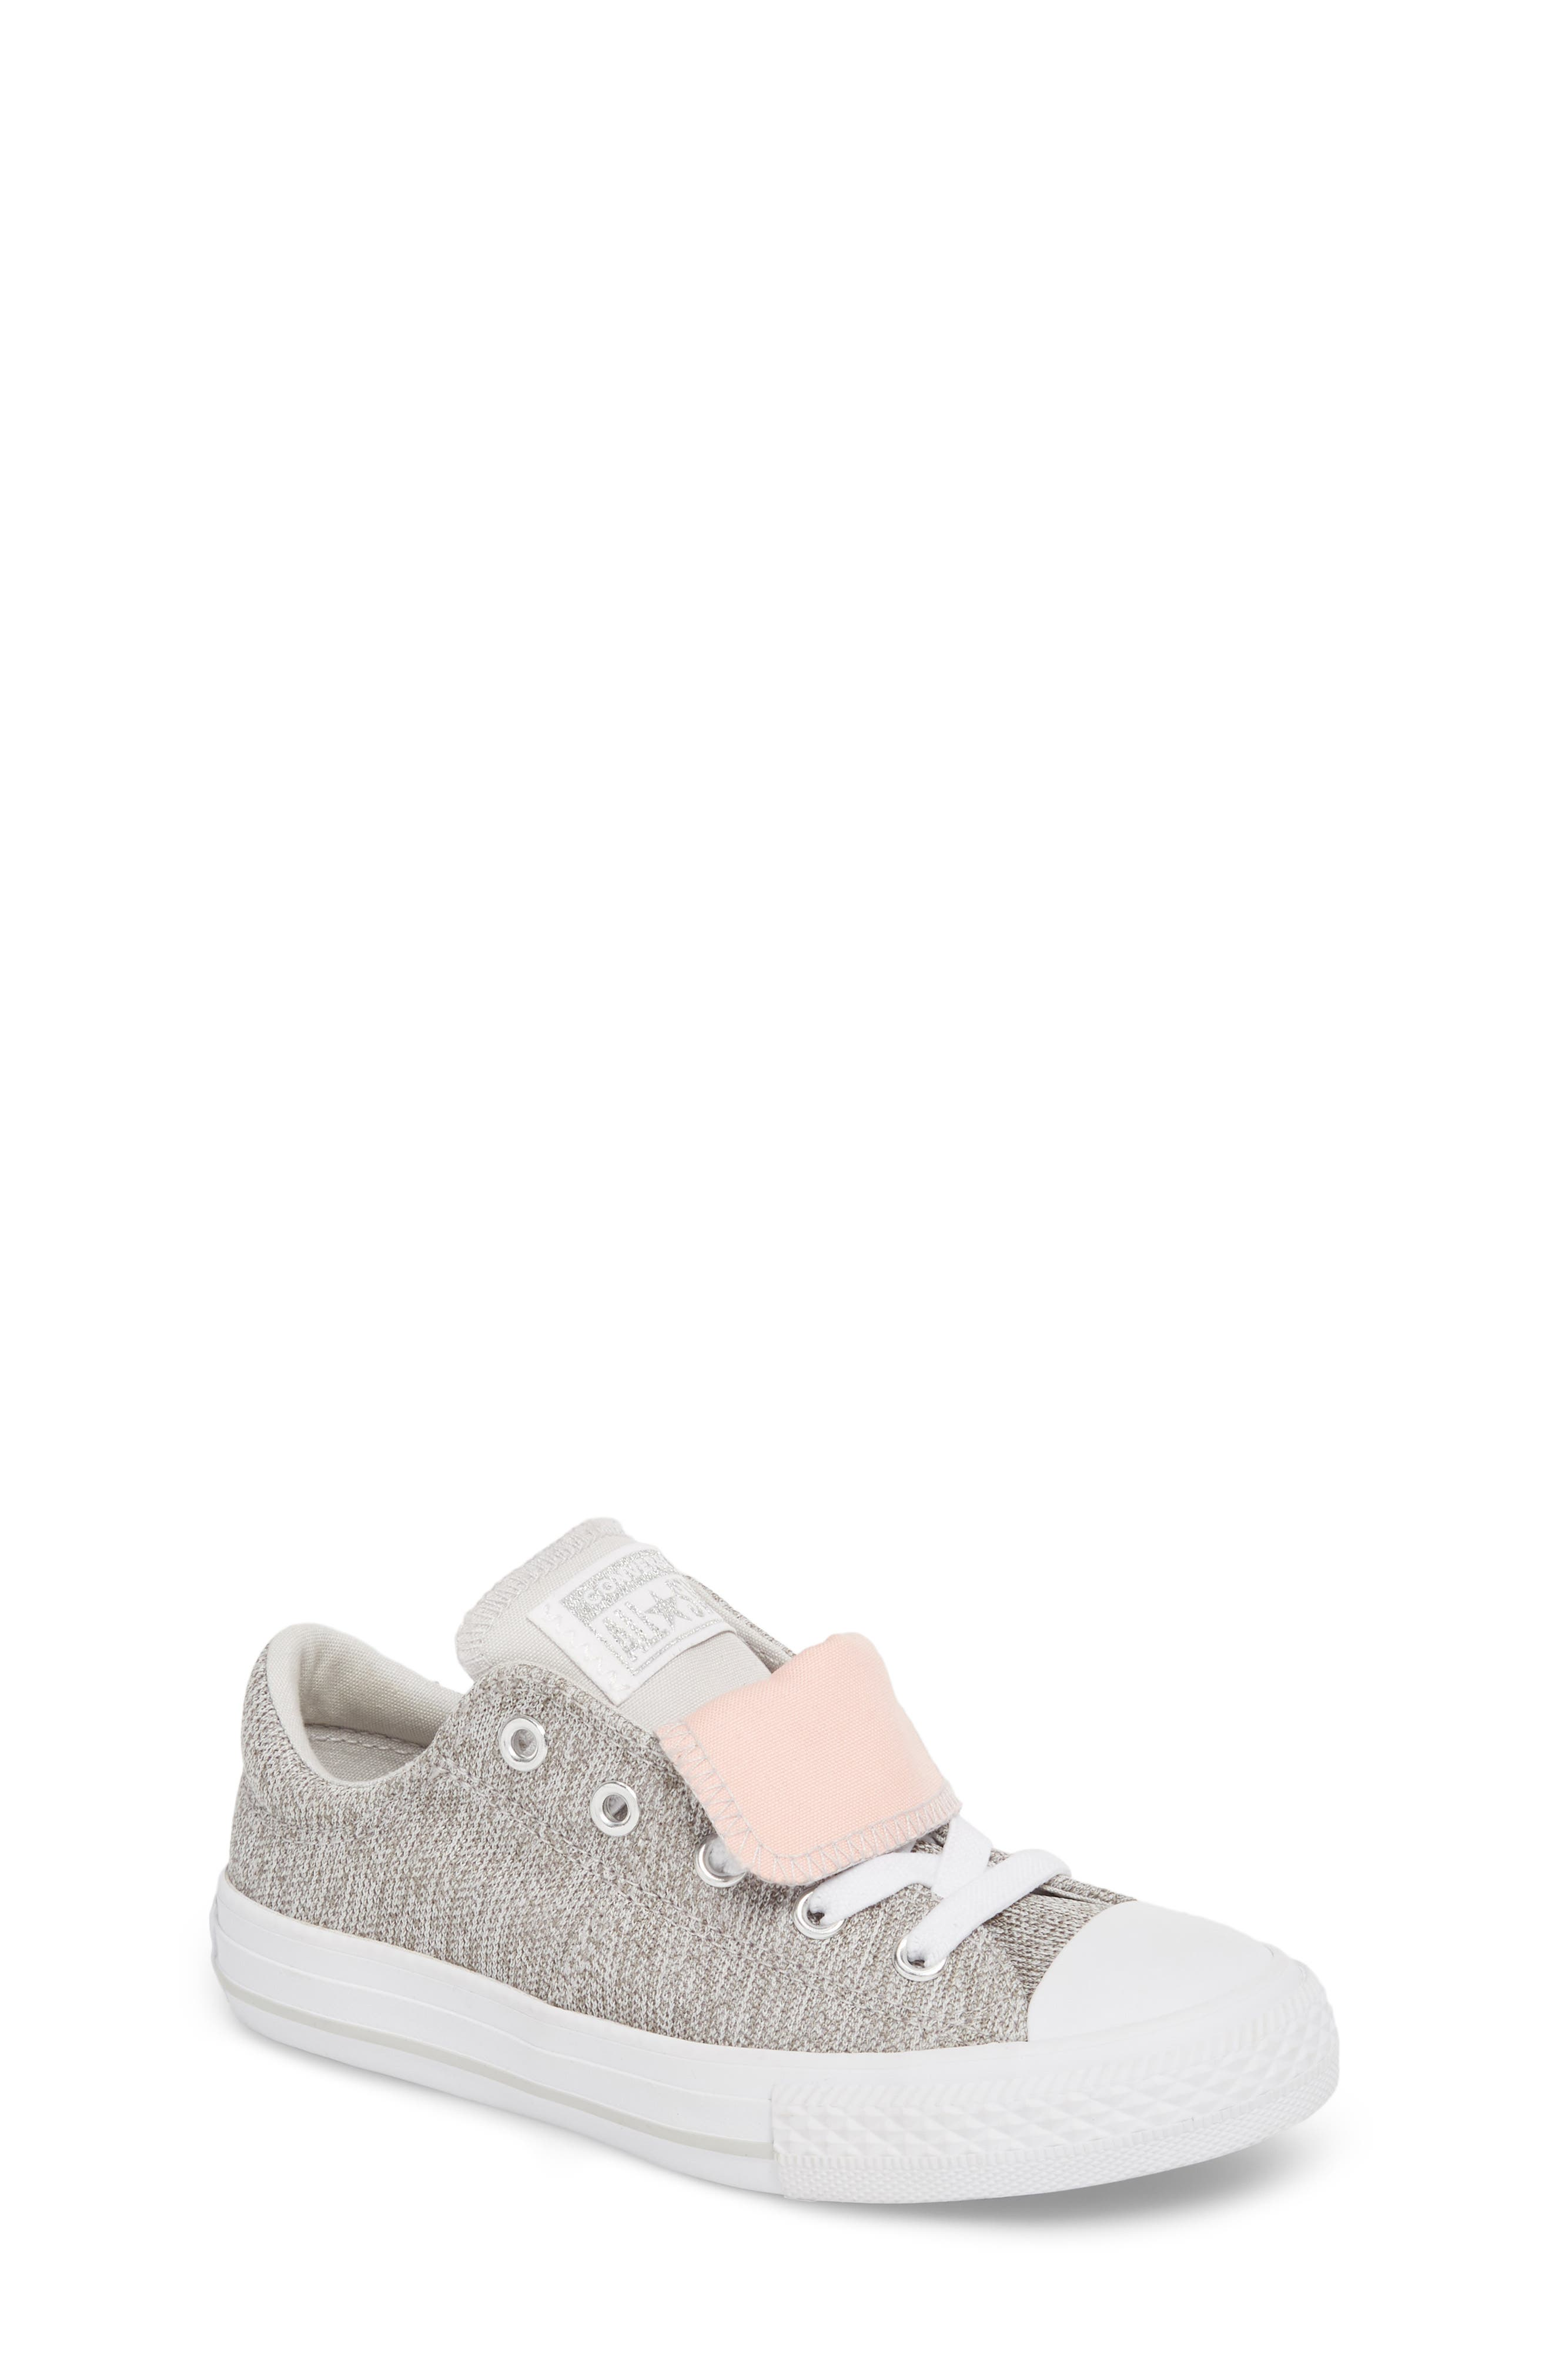 Chuck Taylor<sup>®</sup> All Star<sup>®</sup> Maddie Double Tongue Sneaker,                             Main thumbnail 1, color,                             LIGHT GREY